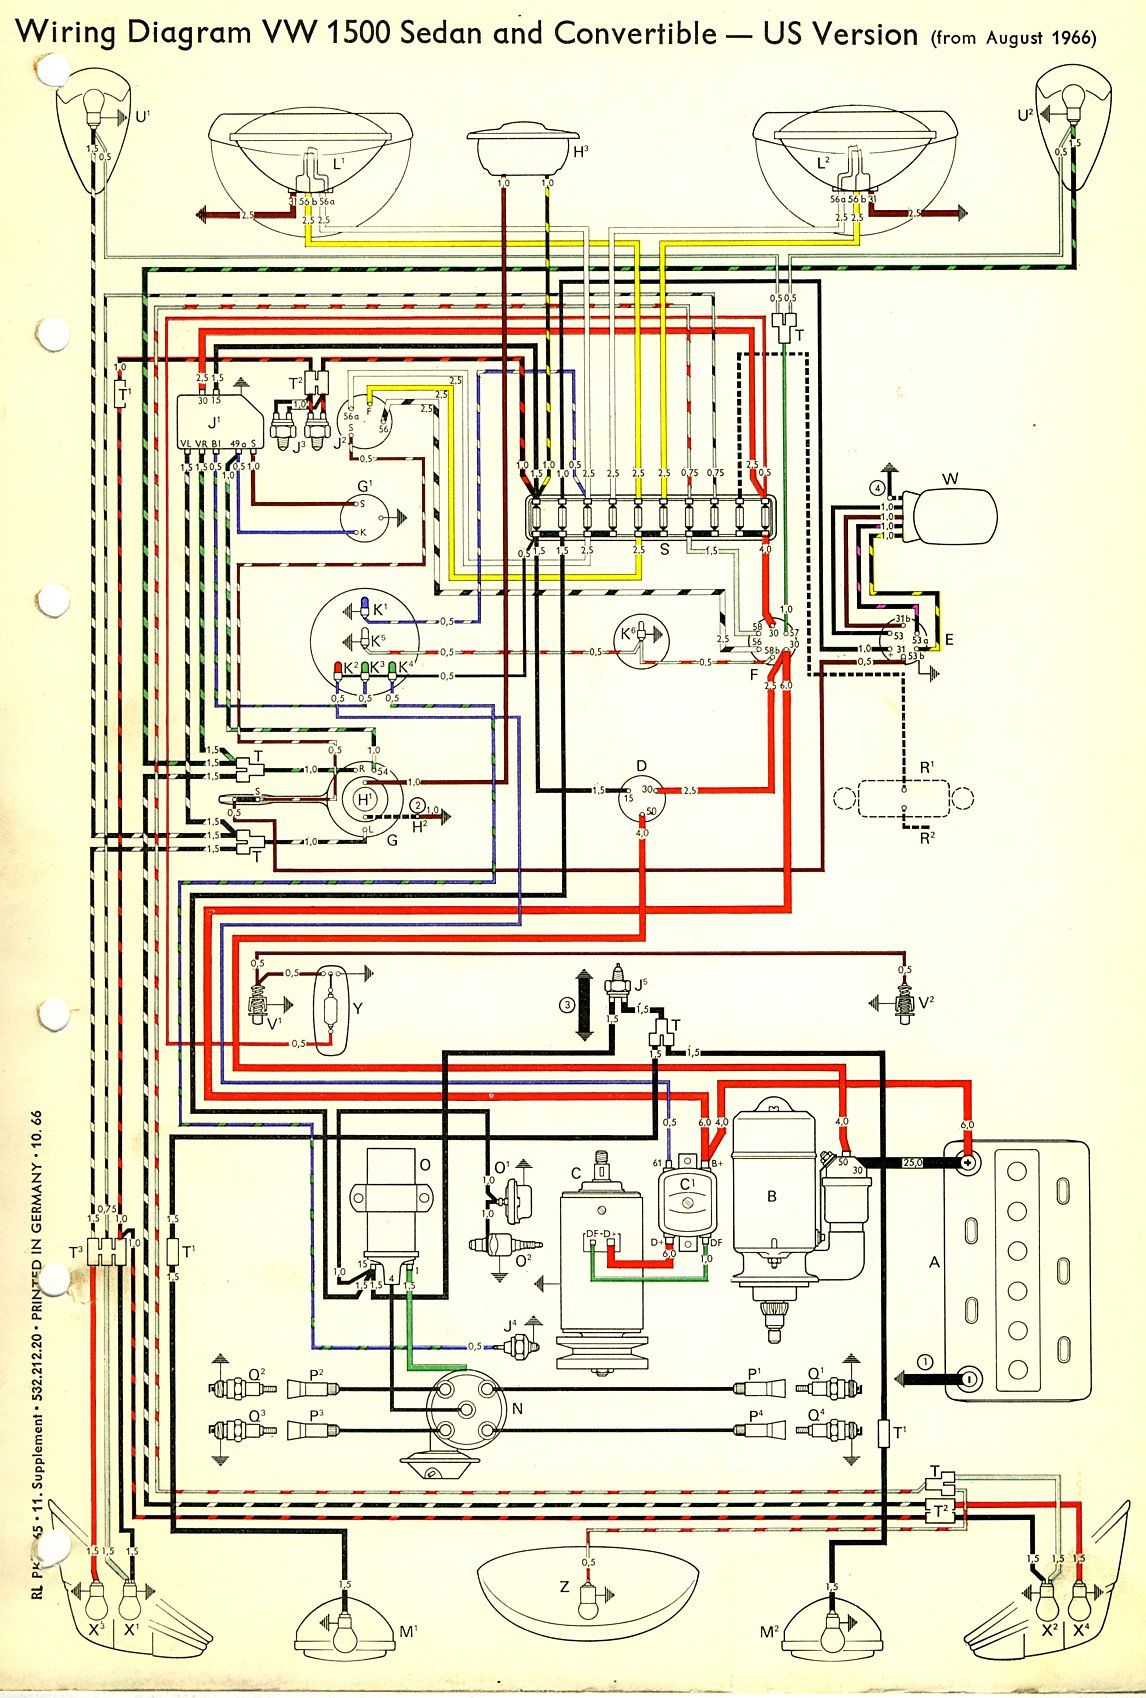 1969 volkswagen beetle ignition wiring diagram 1973 volkswagen beetle chassis wiring diagram 1967 beetle wiring diagram (usa) | thegoldenbug.com | best ... #8